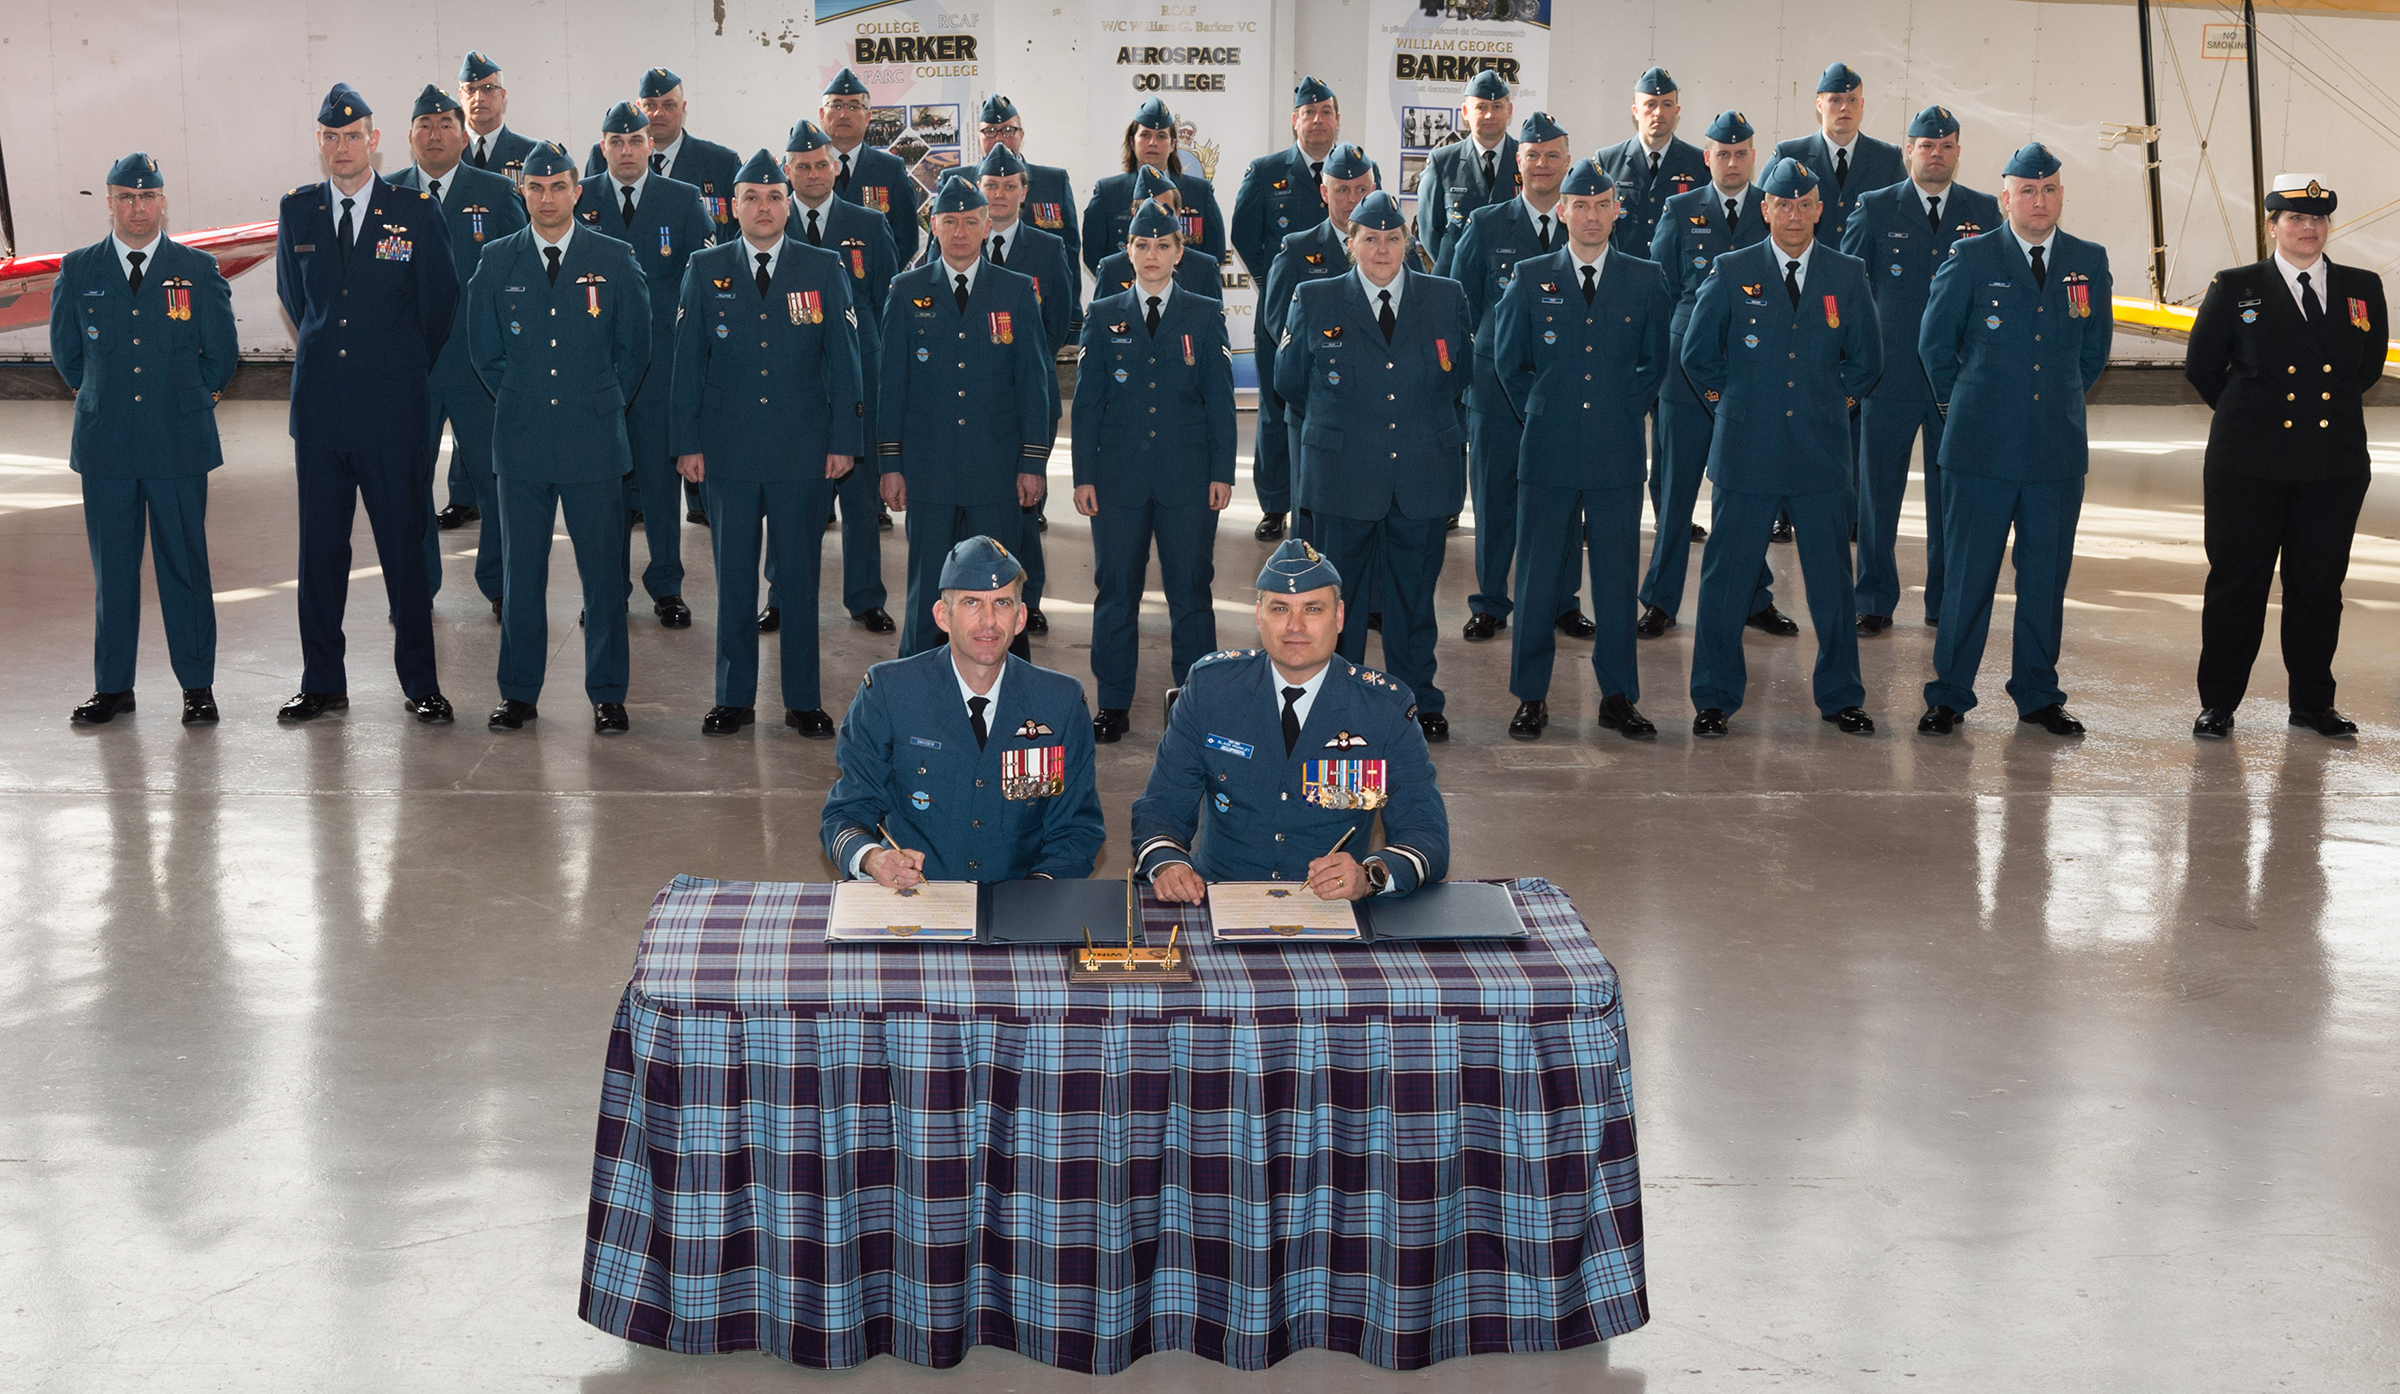 Two men in military uniforms sit at a table covered in tartan cloth and a group of military personnel stand behind them.